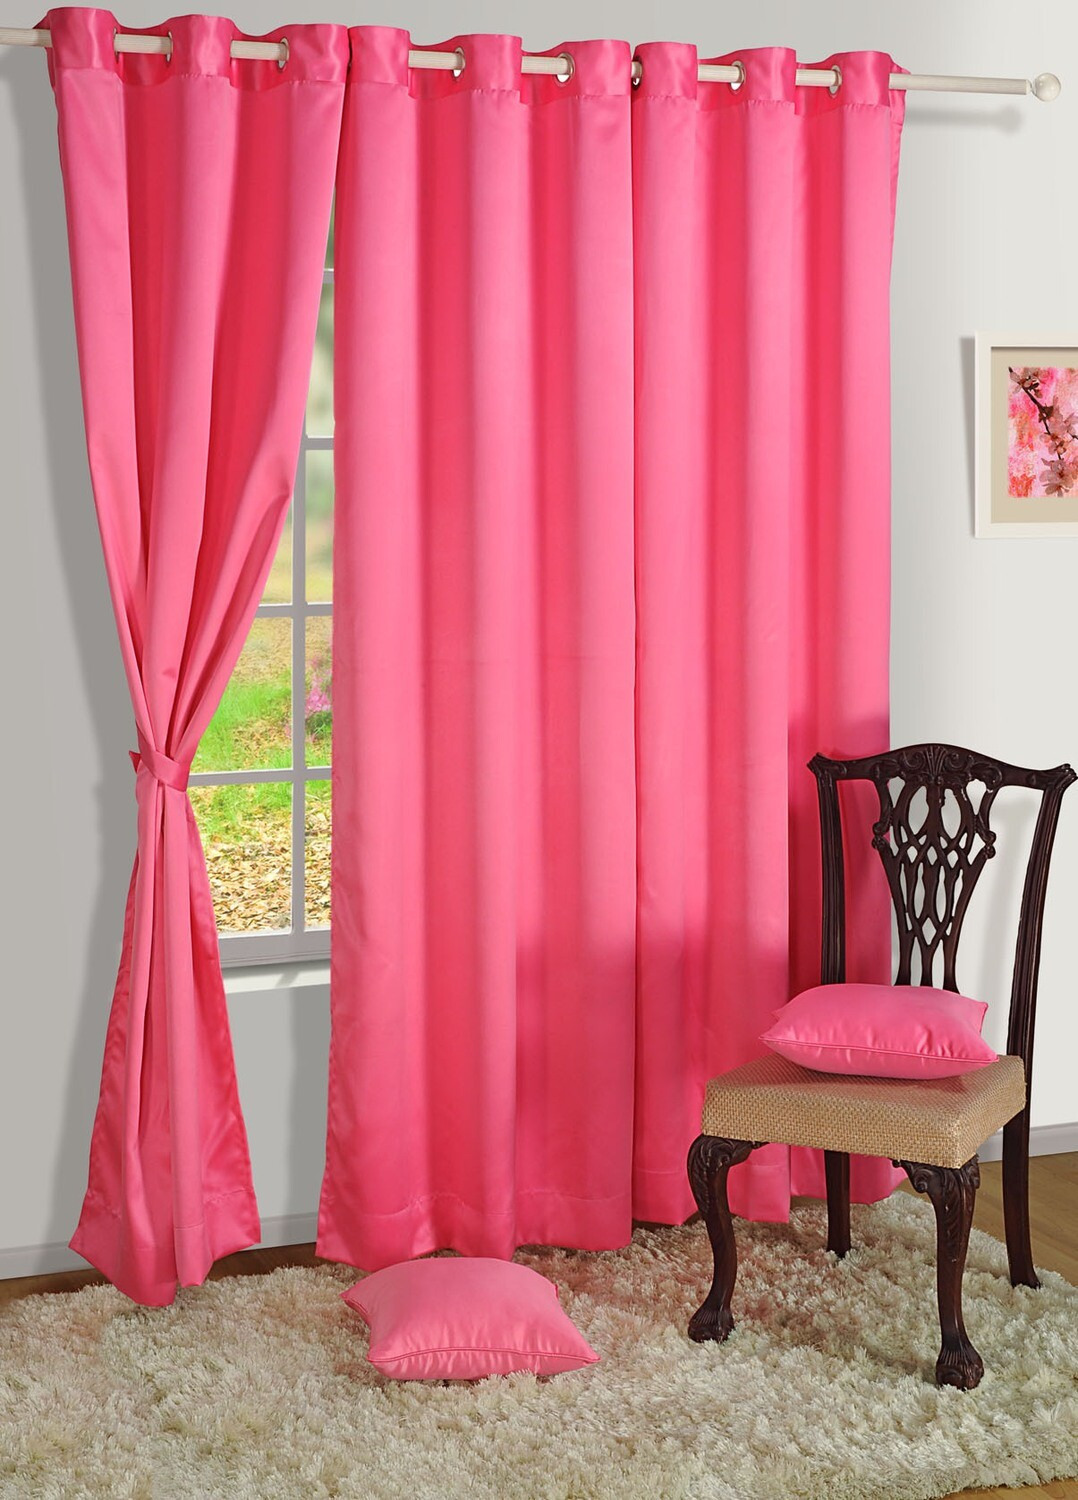 Swayam Pink Colour Solid Blackout Eyelet Curtain for Window